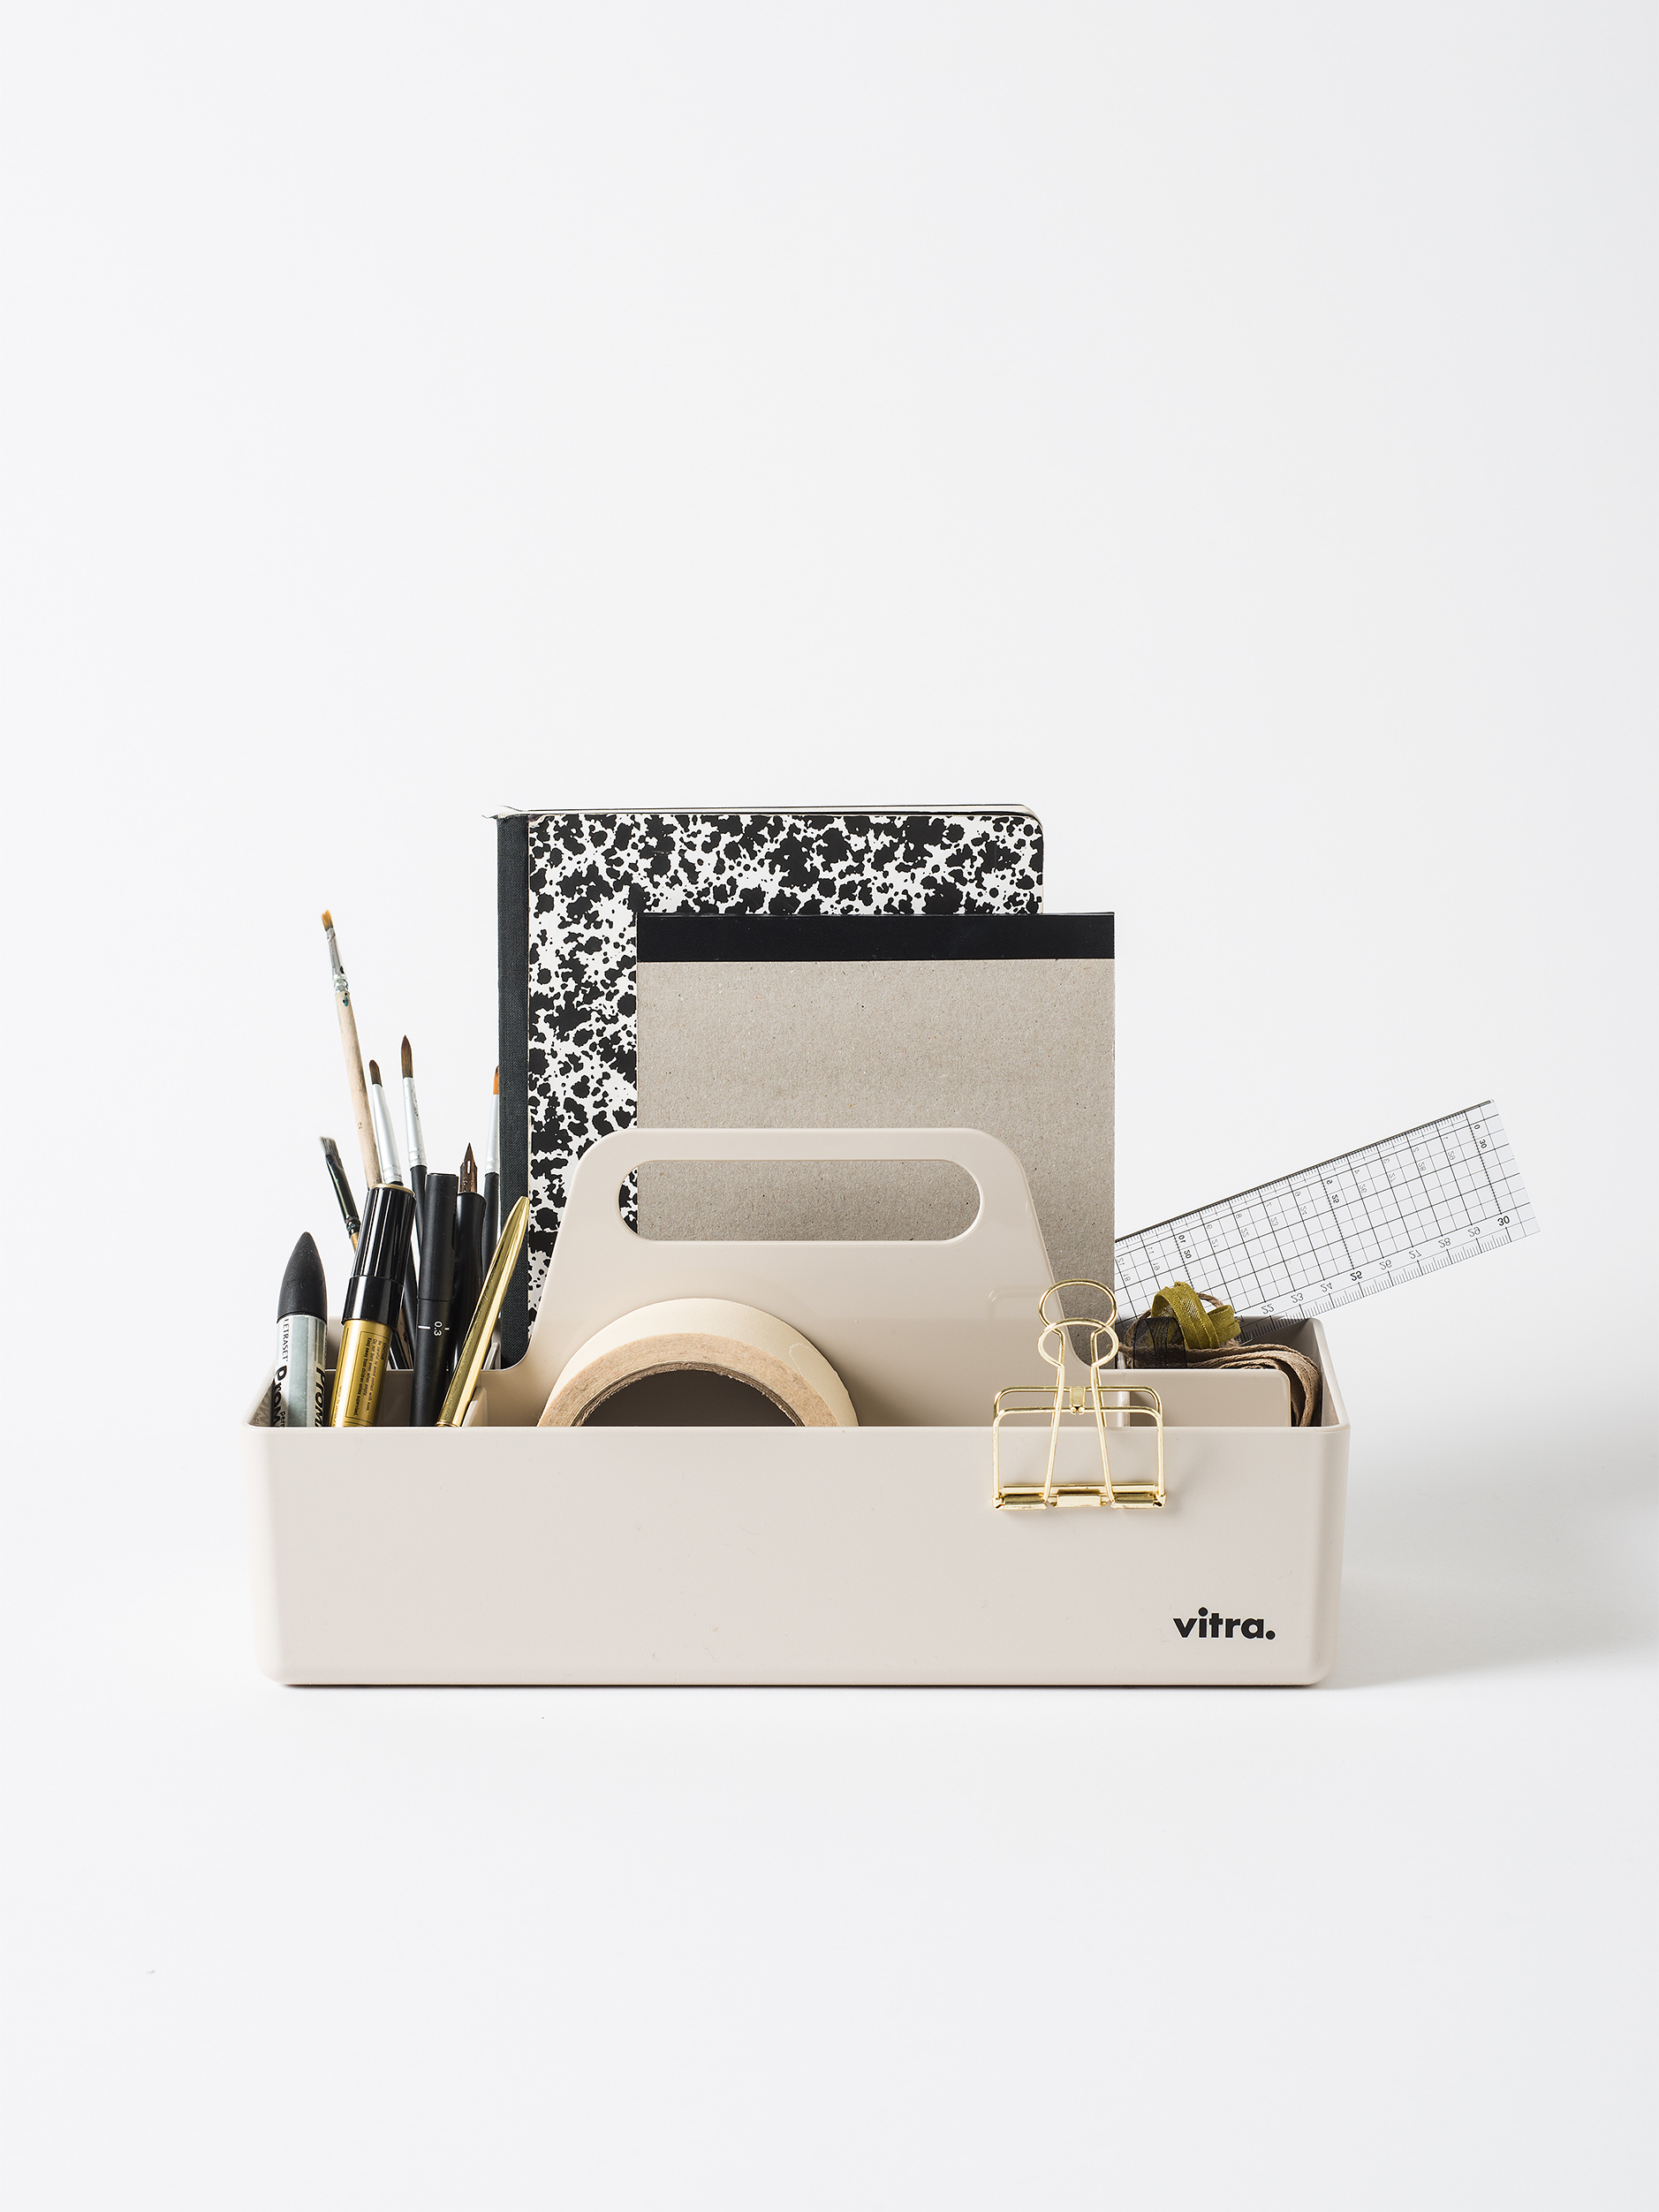 Vitra Toolbox - Warm Grey $59.90